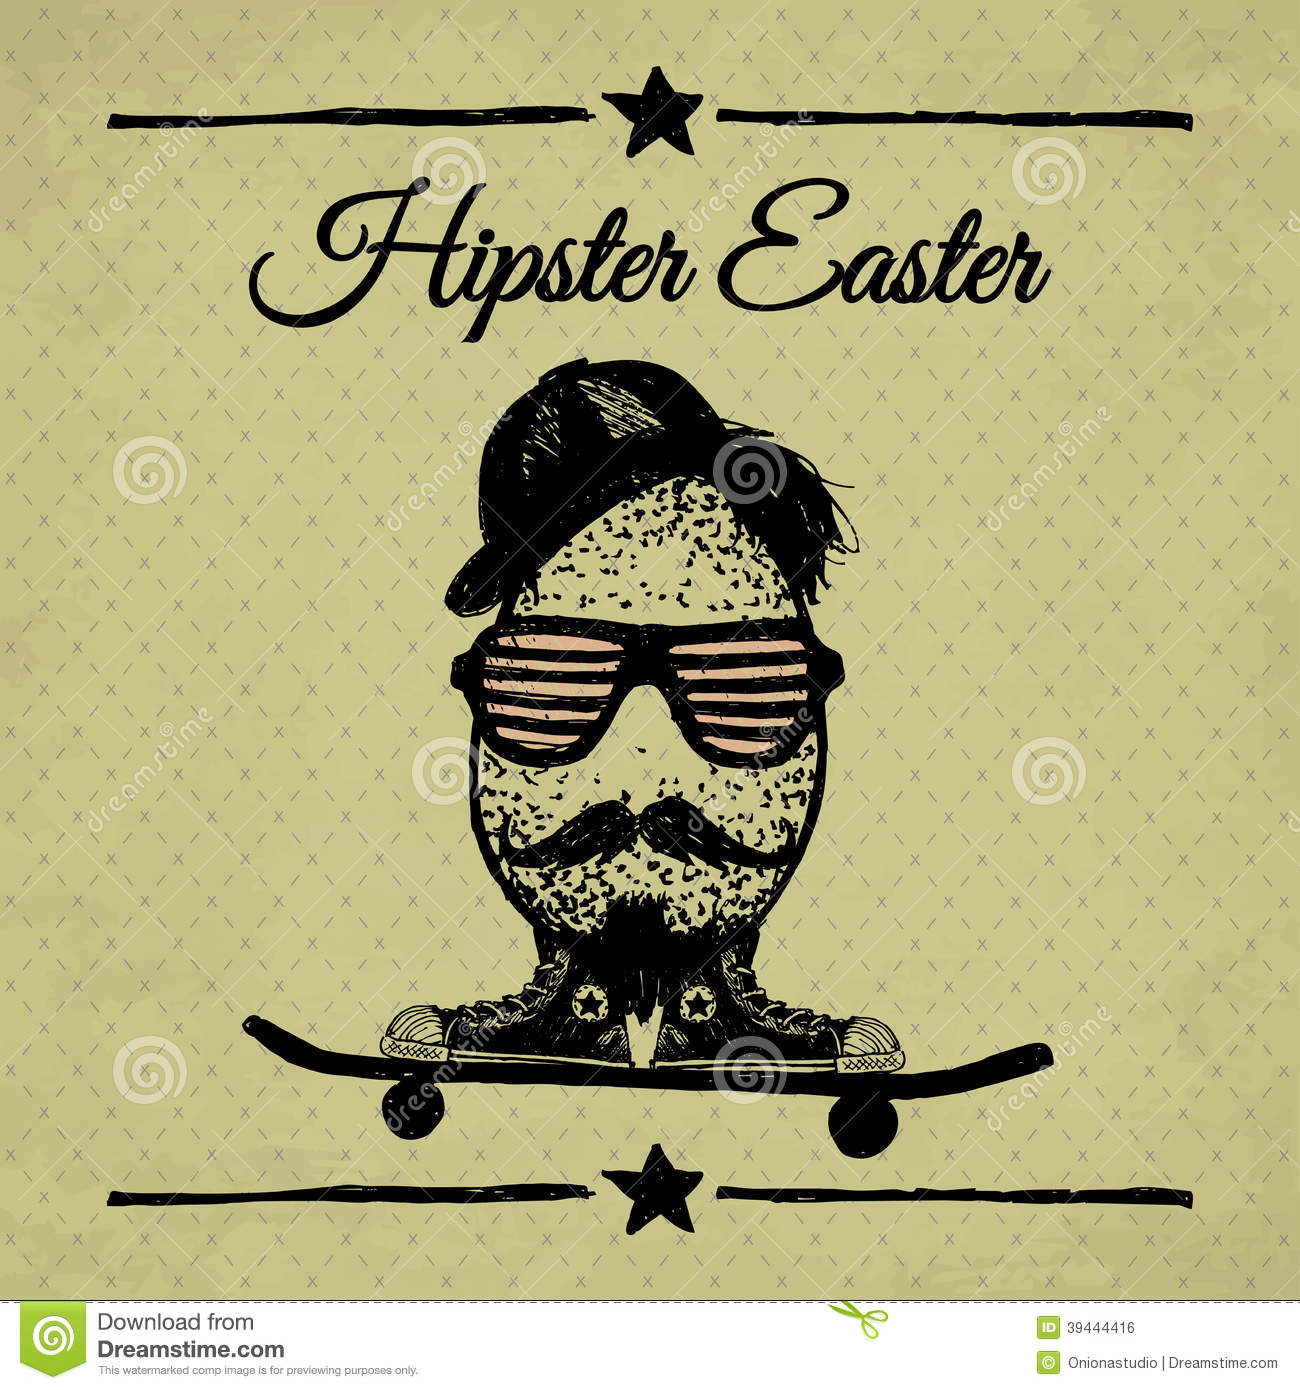 Cute Mustache Wallpaper Hipster Easter Vintage Poster With Egg On Skateboard